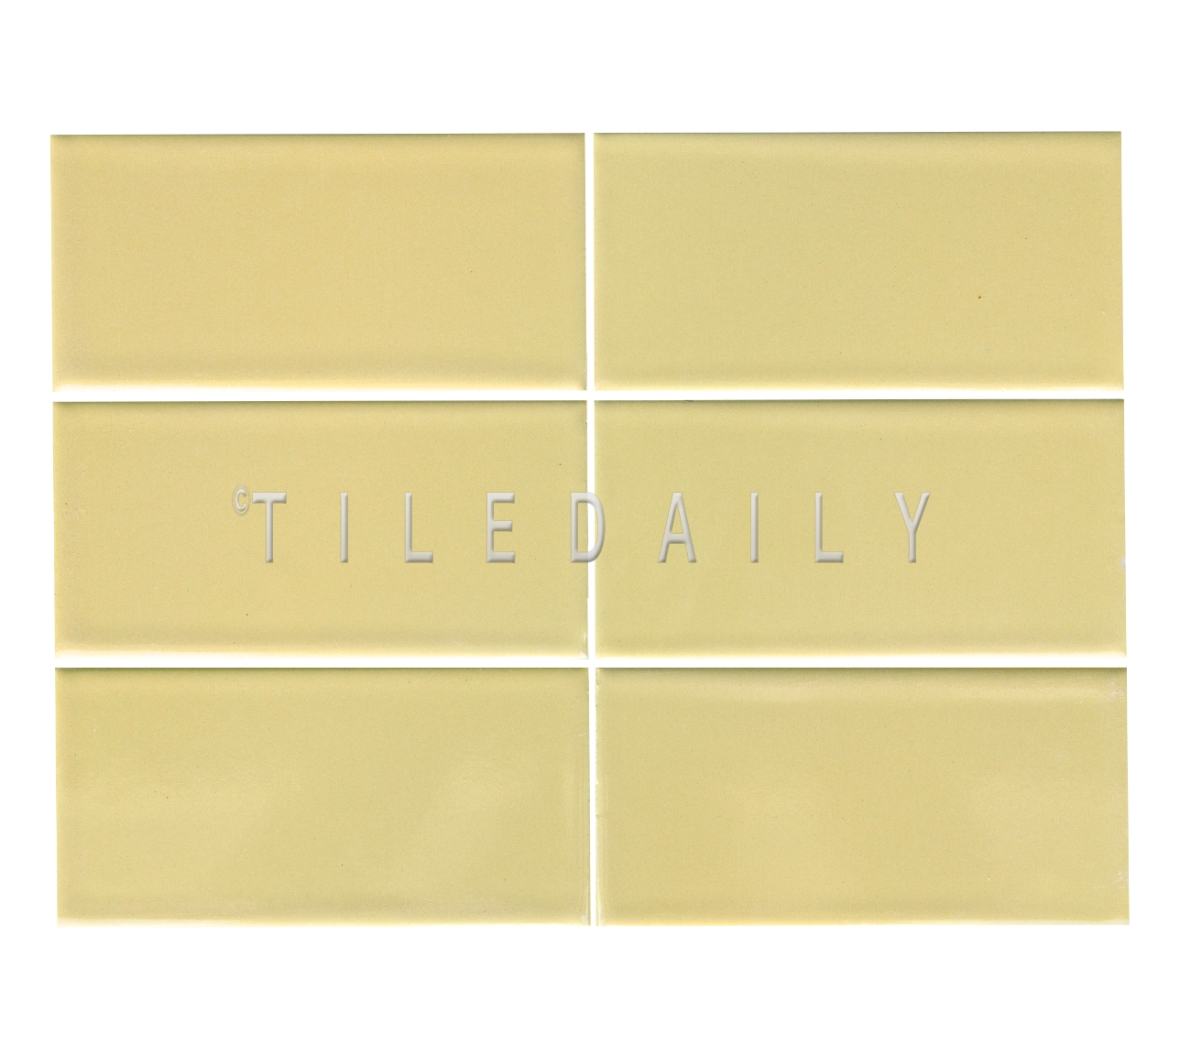 3x6 Cottage Series Ceramic Subway Tile, Yellow. Available at TileDaily